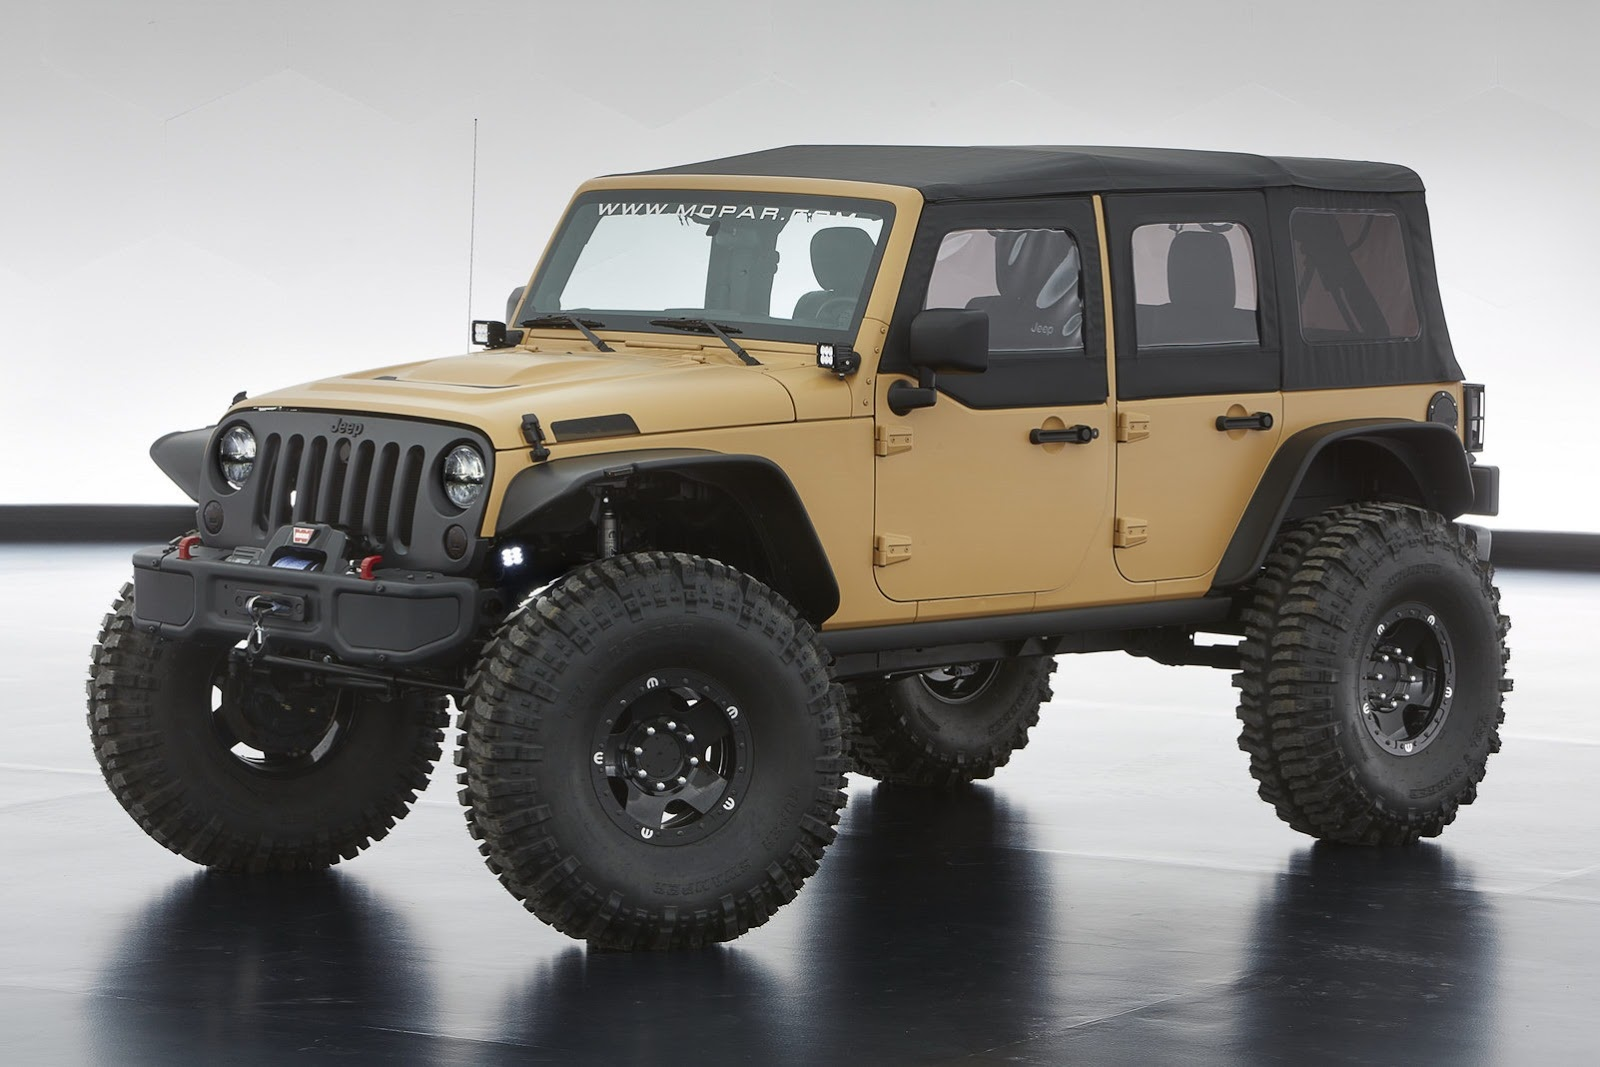 3ee664e7909 Jeep Performance Parts prototype forged beadlock wheels carry 40-inch  off-road tires, giving Sand Trooper II its menacing stance.